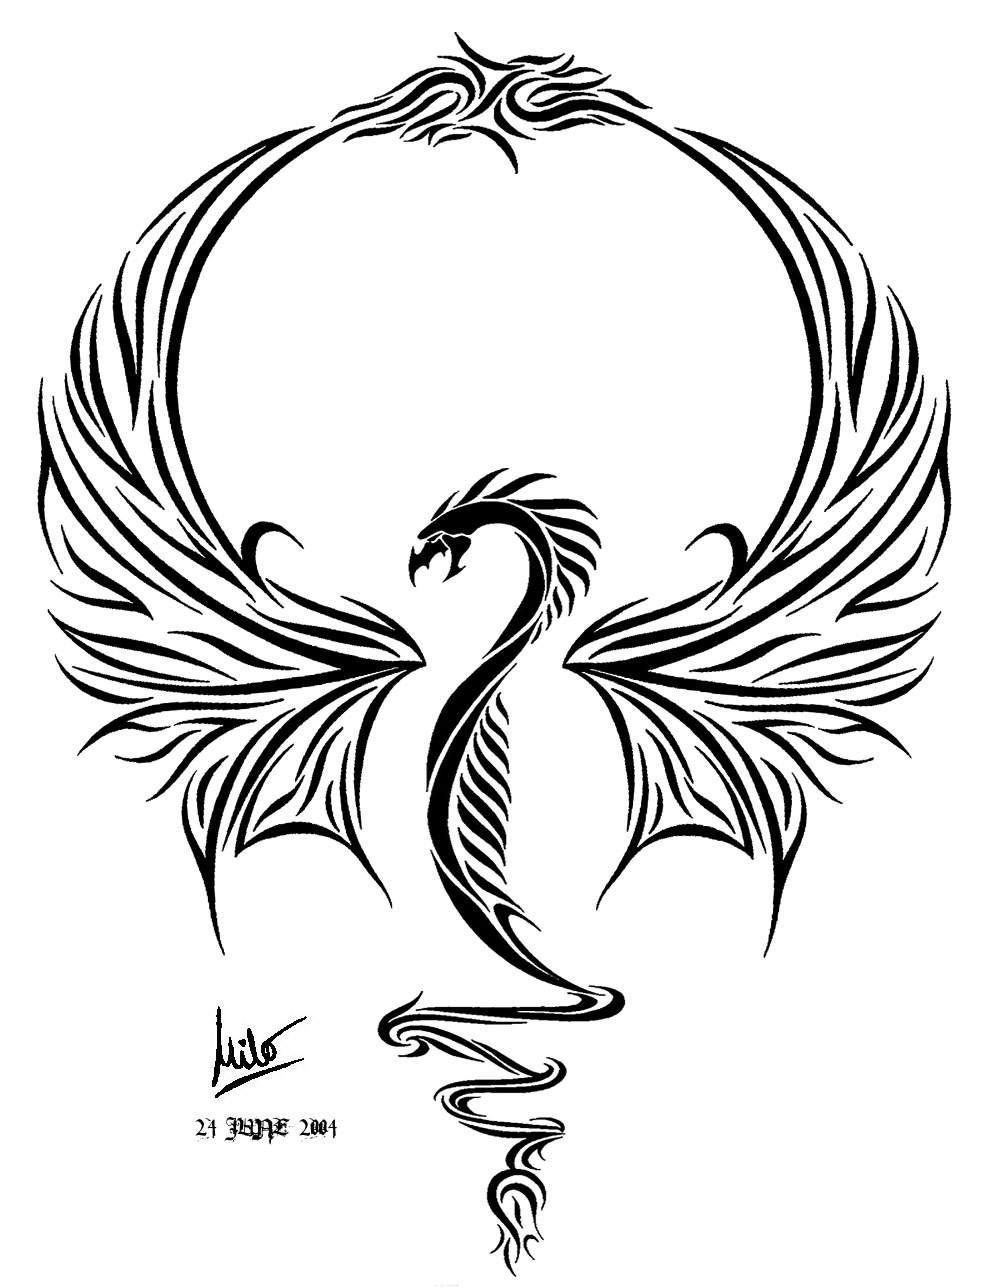 Ultimate dragon tattoo by milo wildcat on deviantart for Dragon tattoo drawings